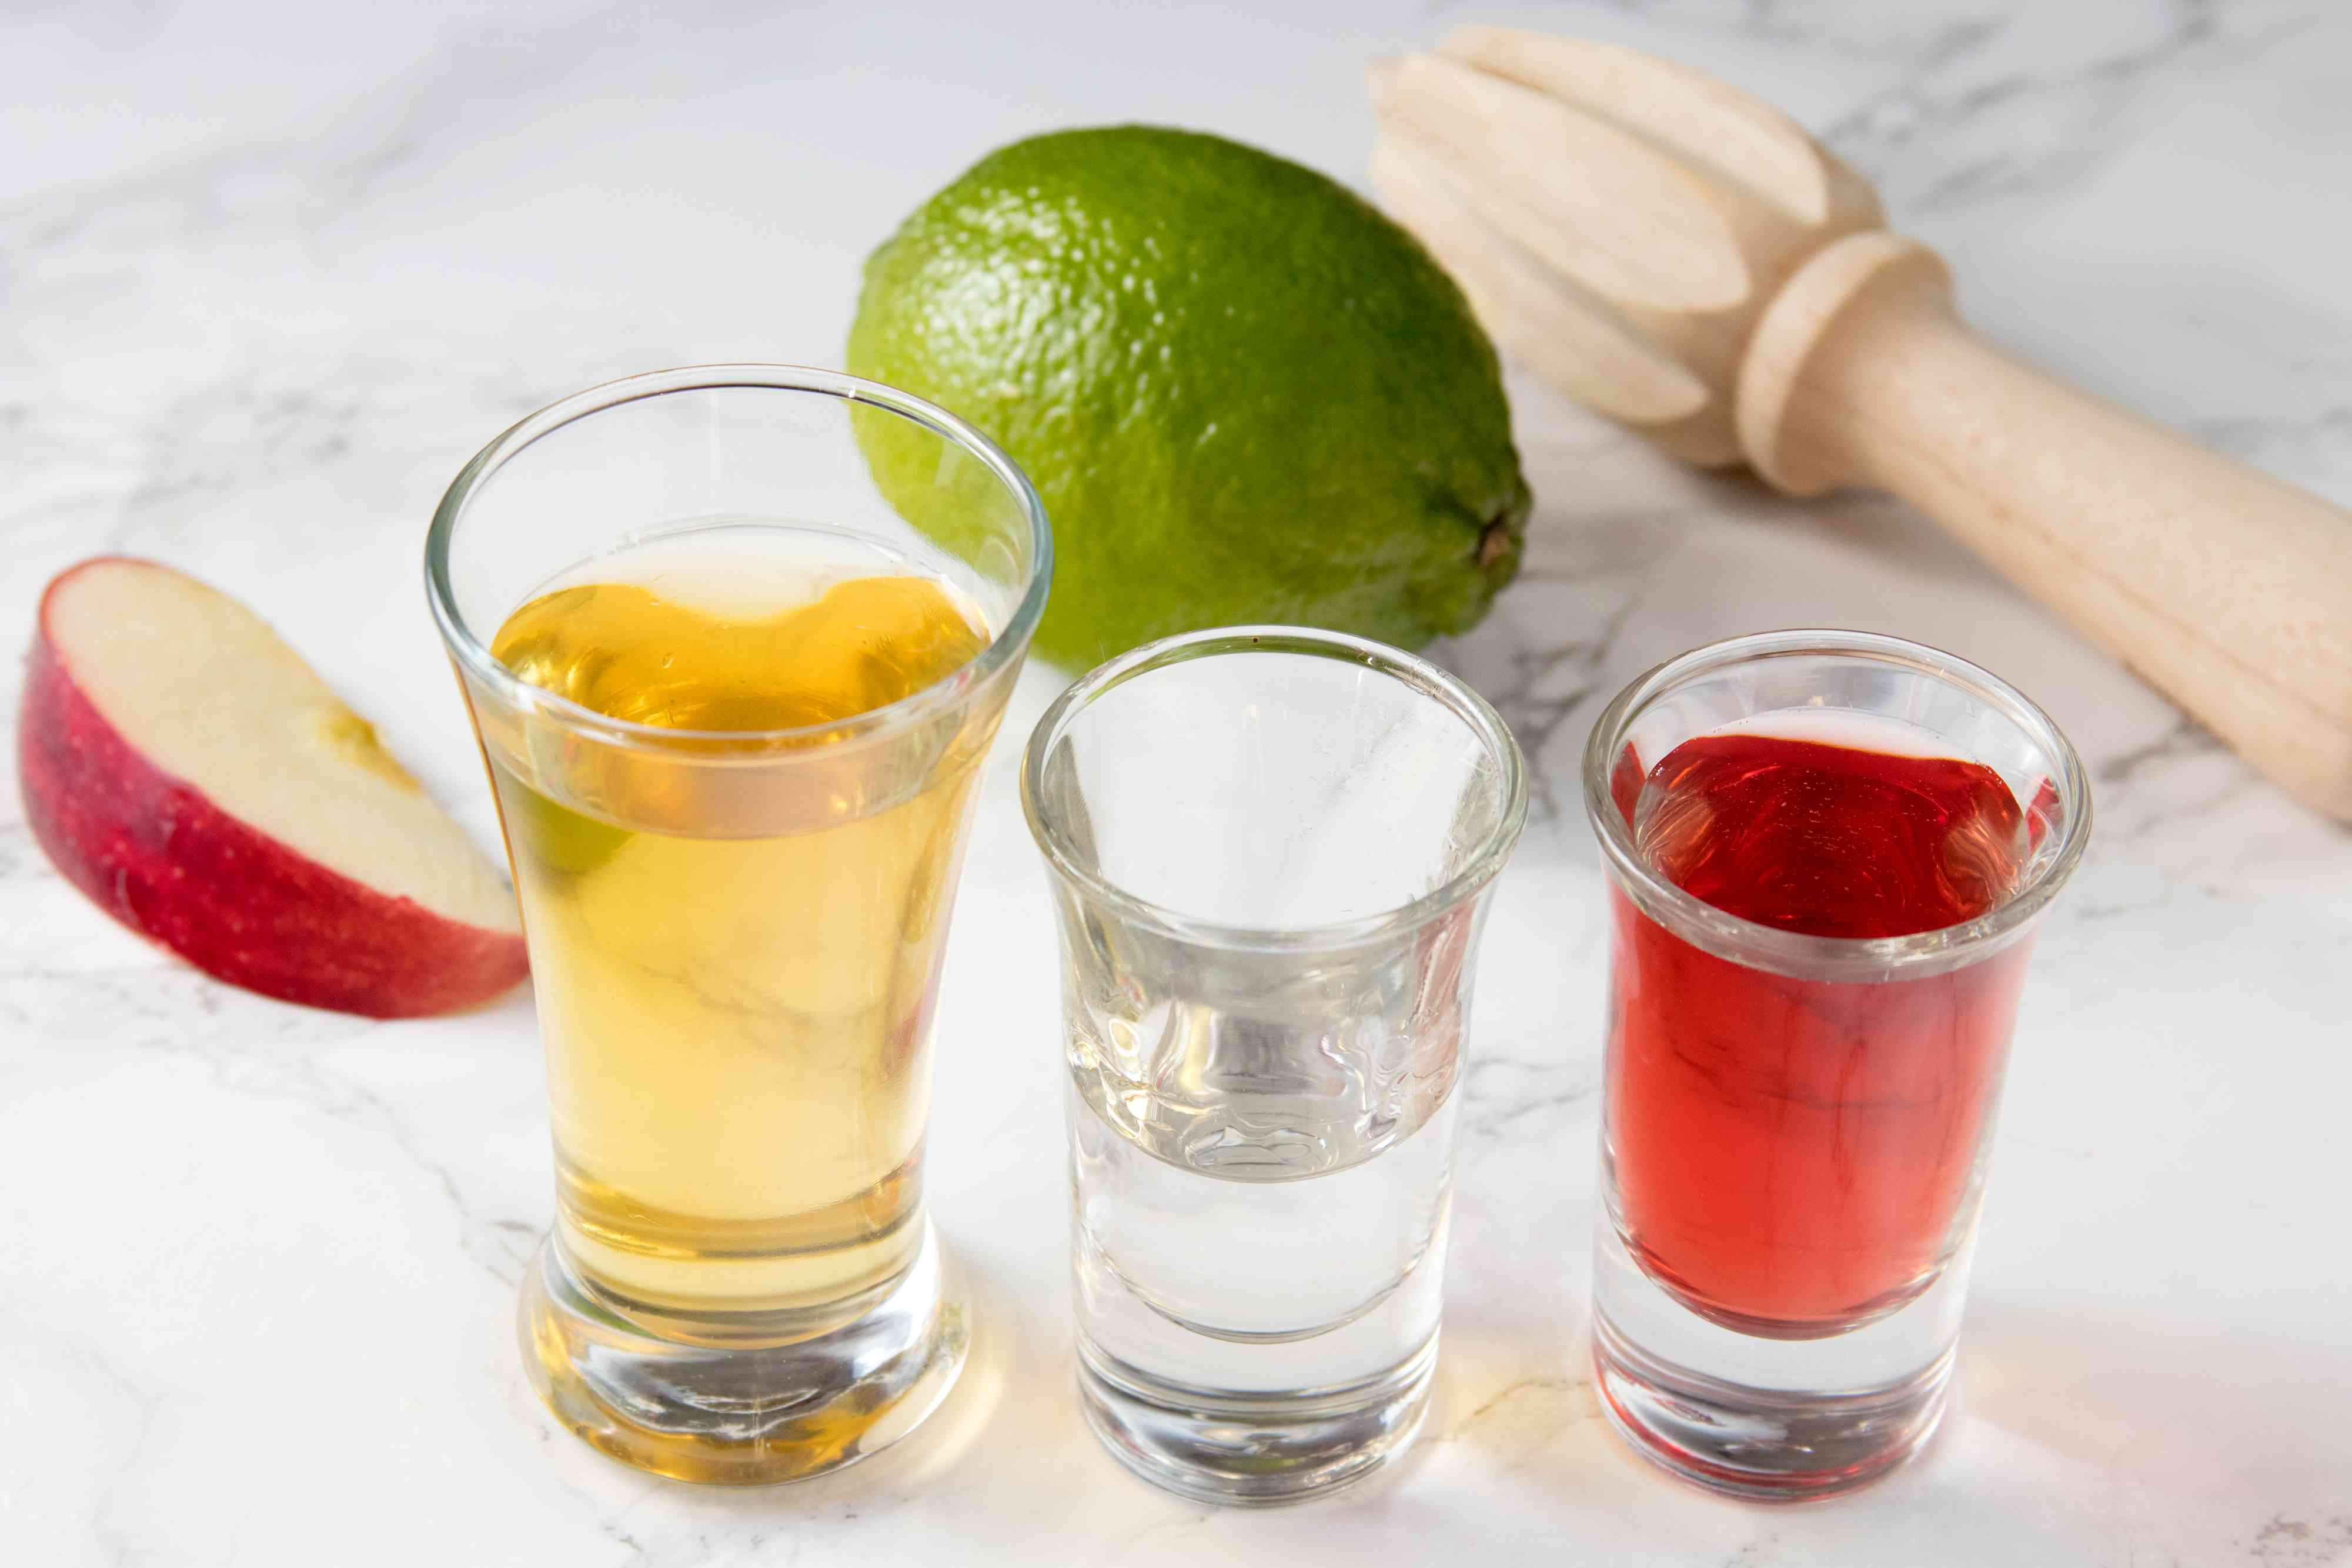 Ingredients for a Cranberry Margarita With Apple-Cinnamon Tequila